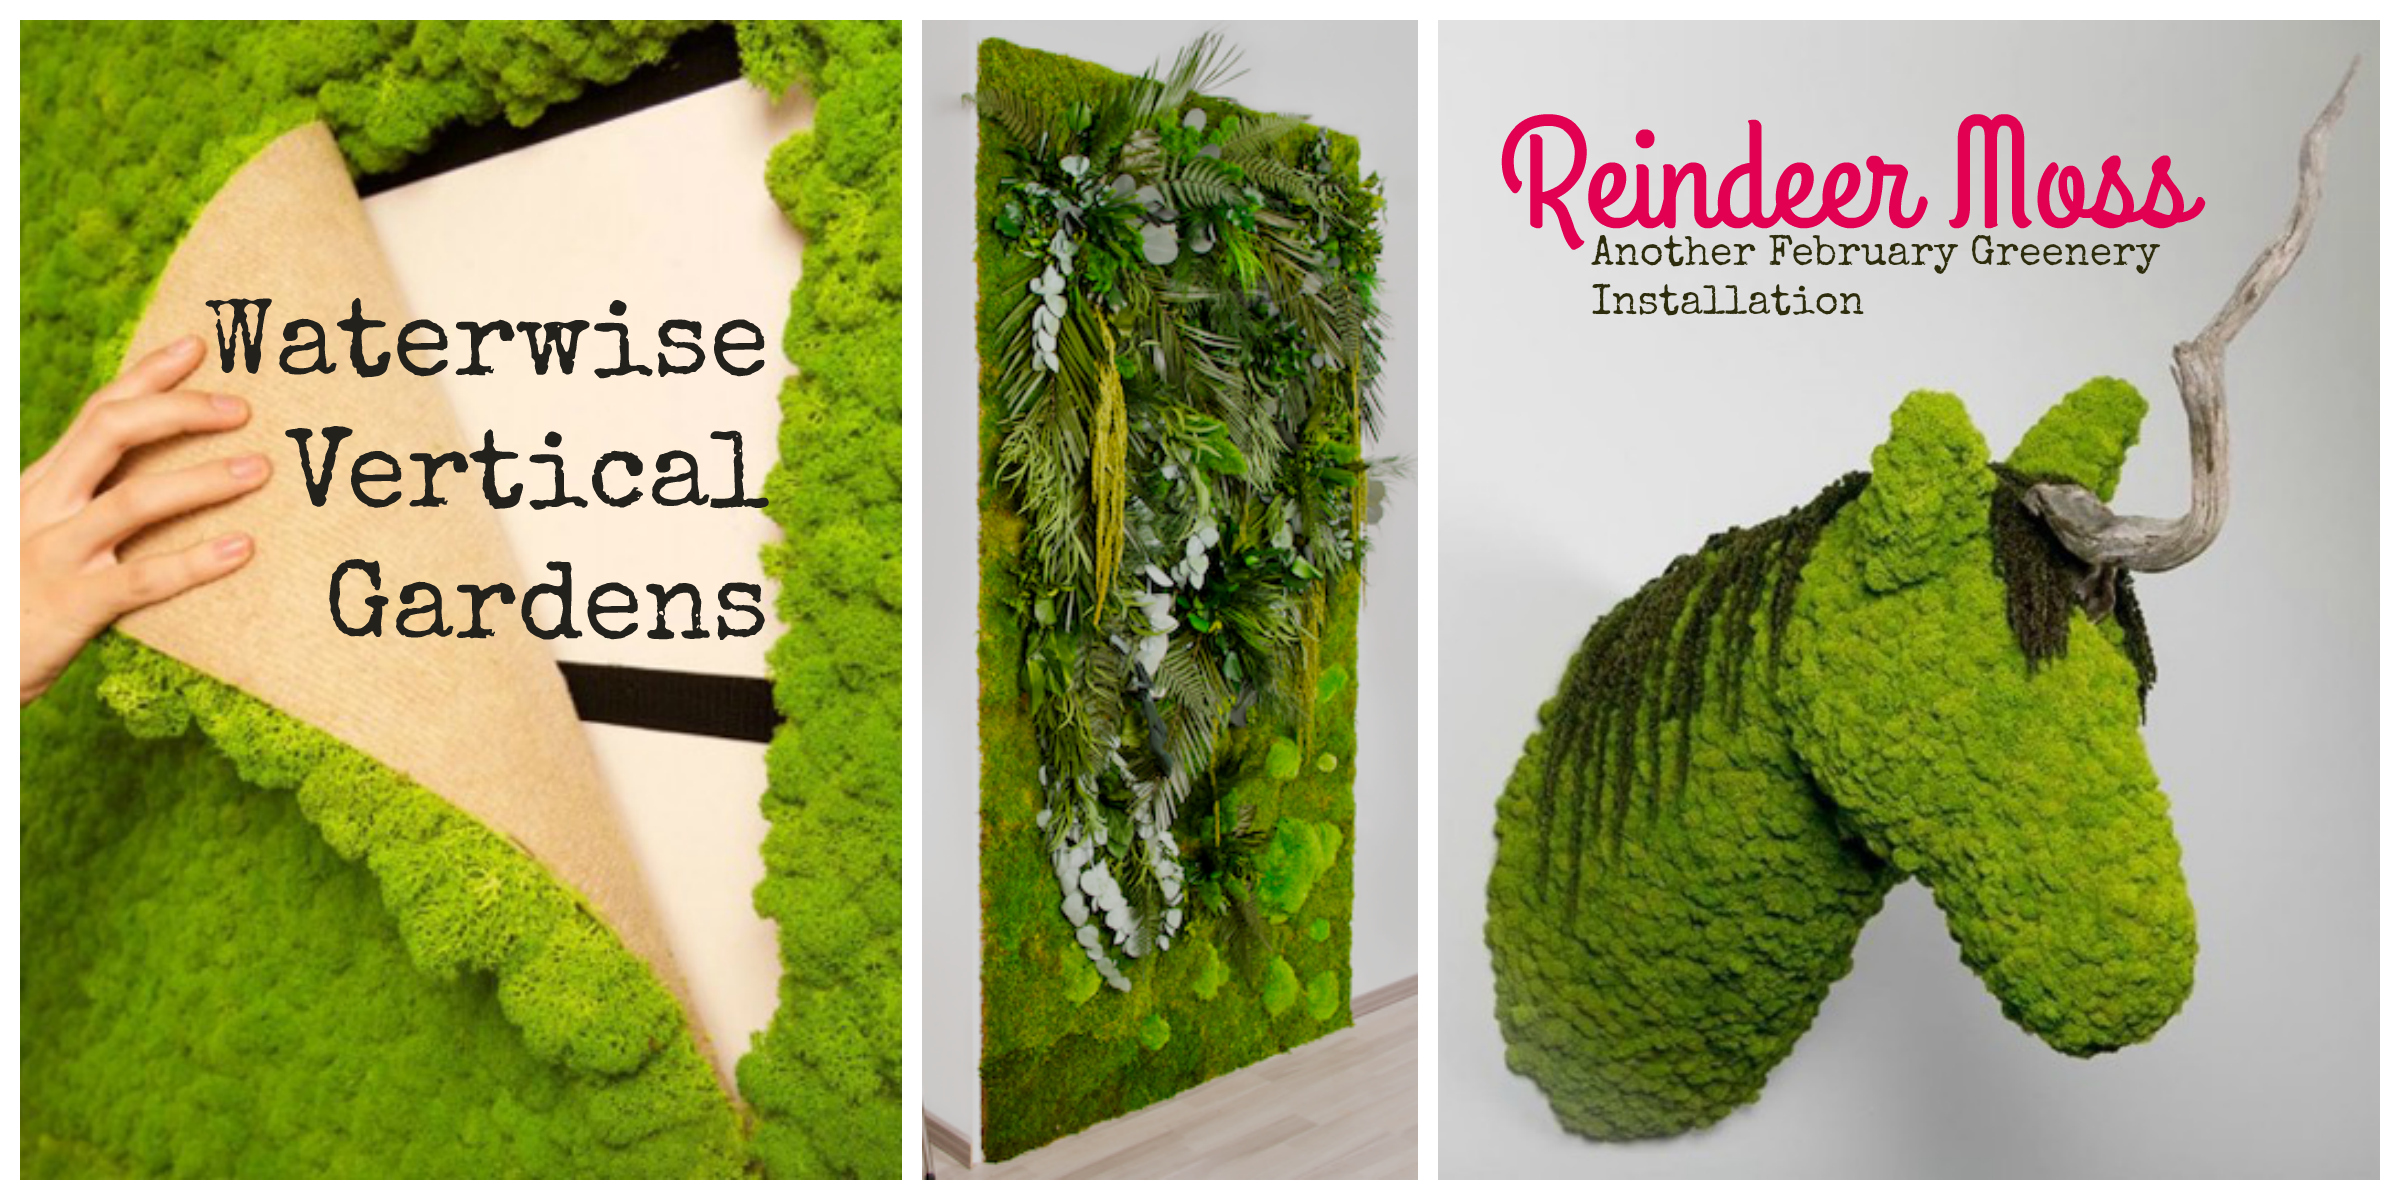 Waterwise vertical and wall garden solutions Reindeer Moss for Greenery Tassels & Tigers Interiors